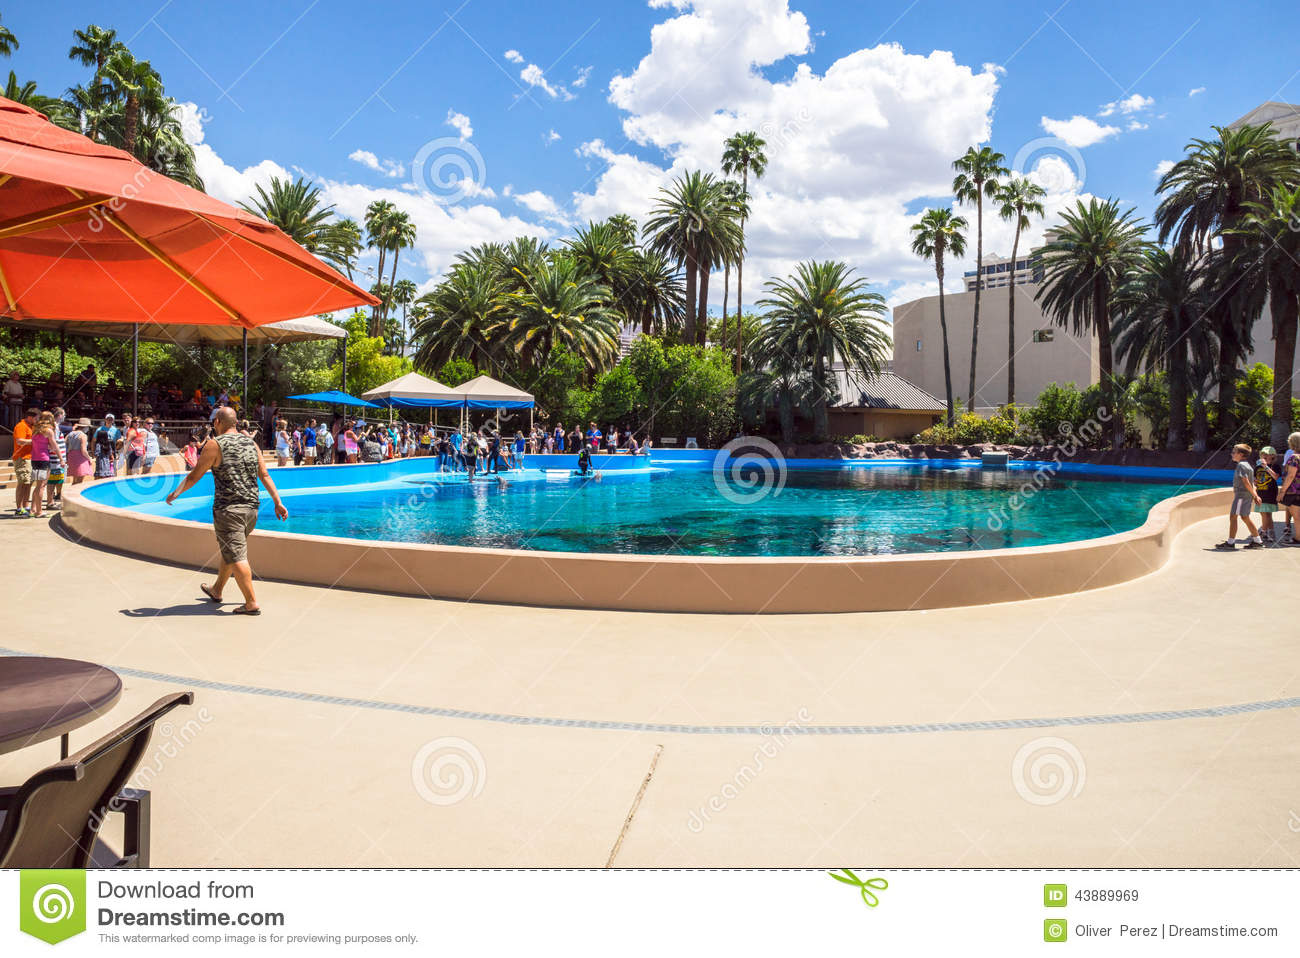 download siegfried and roy secret garden and dolphin habitat editorial stock image image of family - Siegfried Roys Secret Garden And Dolphin Habitat